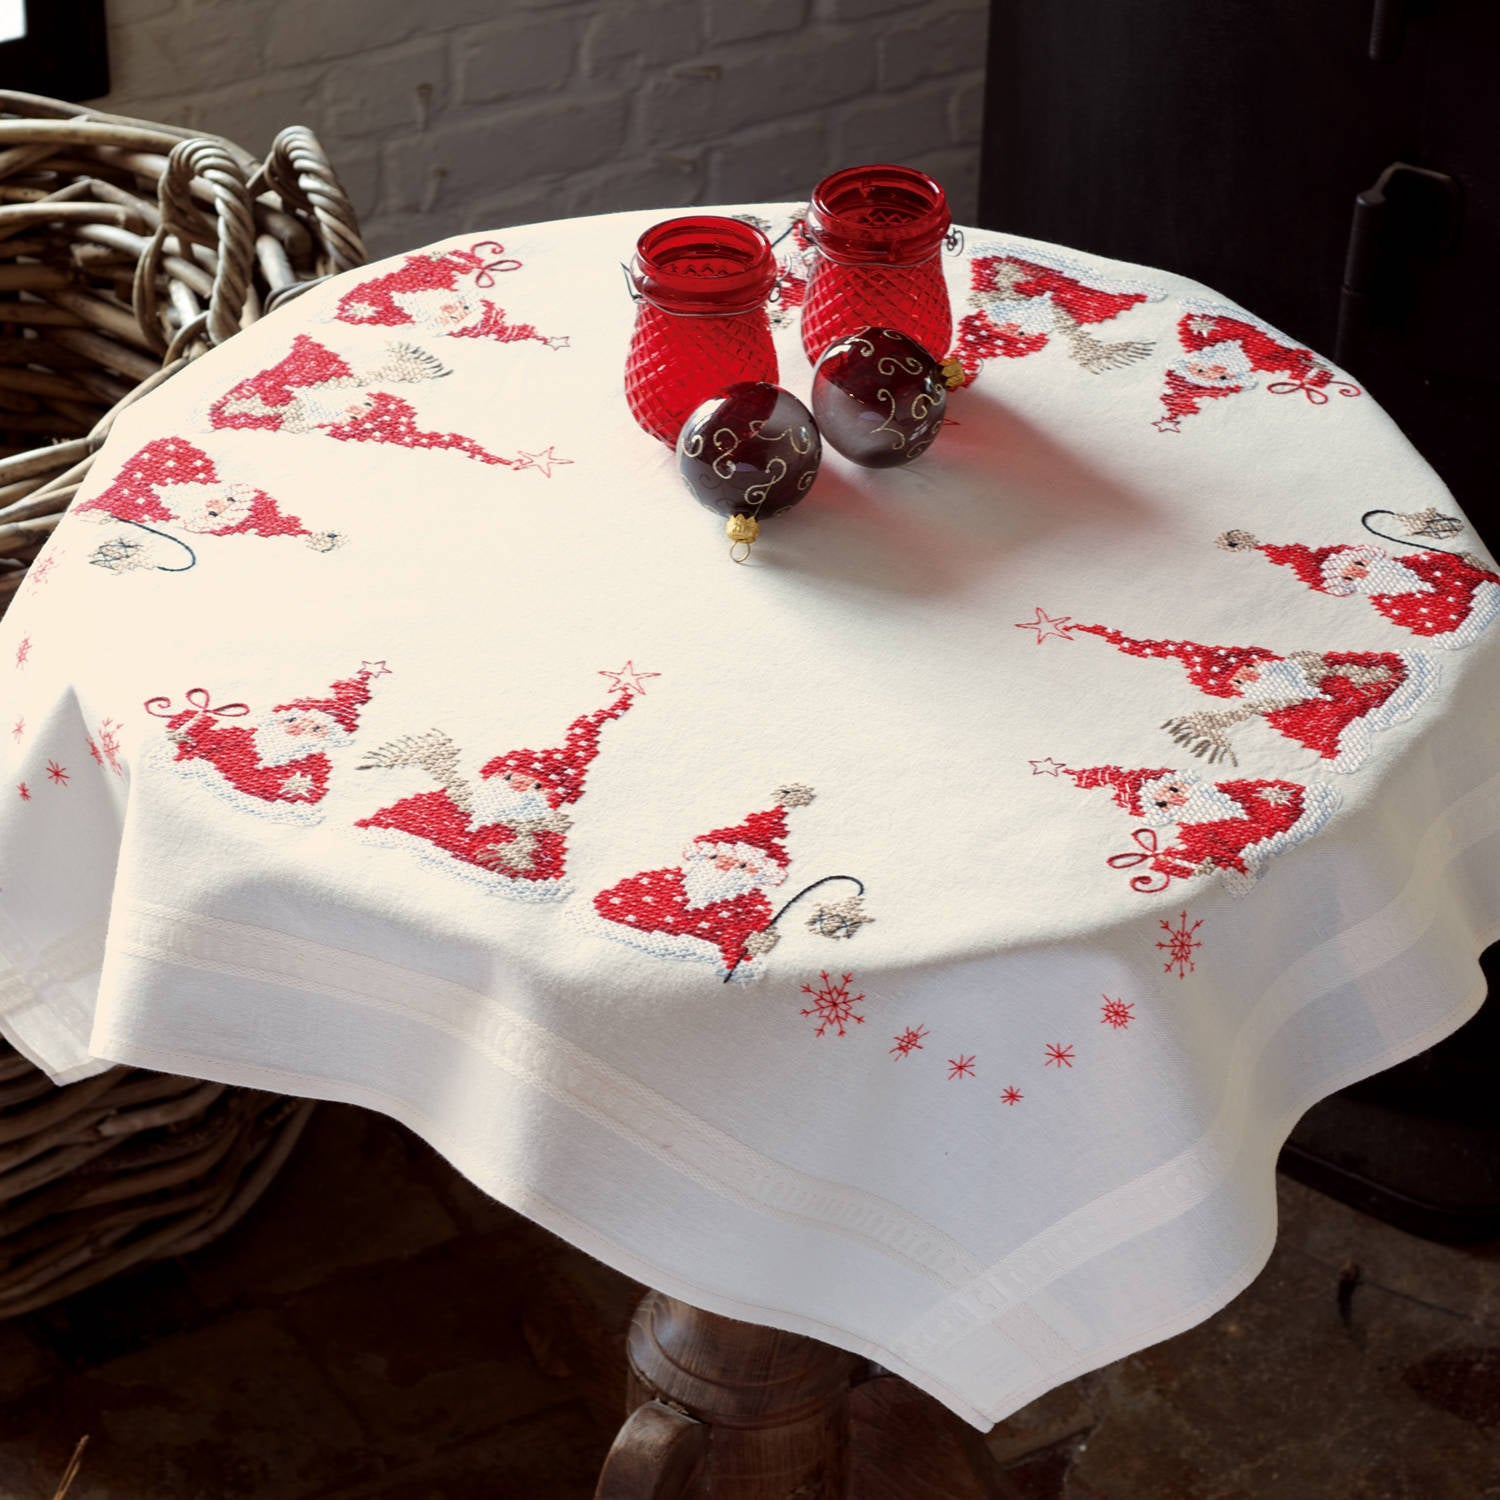 Three Santa's Tablecloth <br />Embroidery Kit